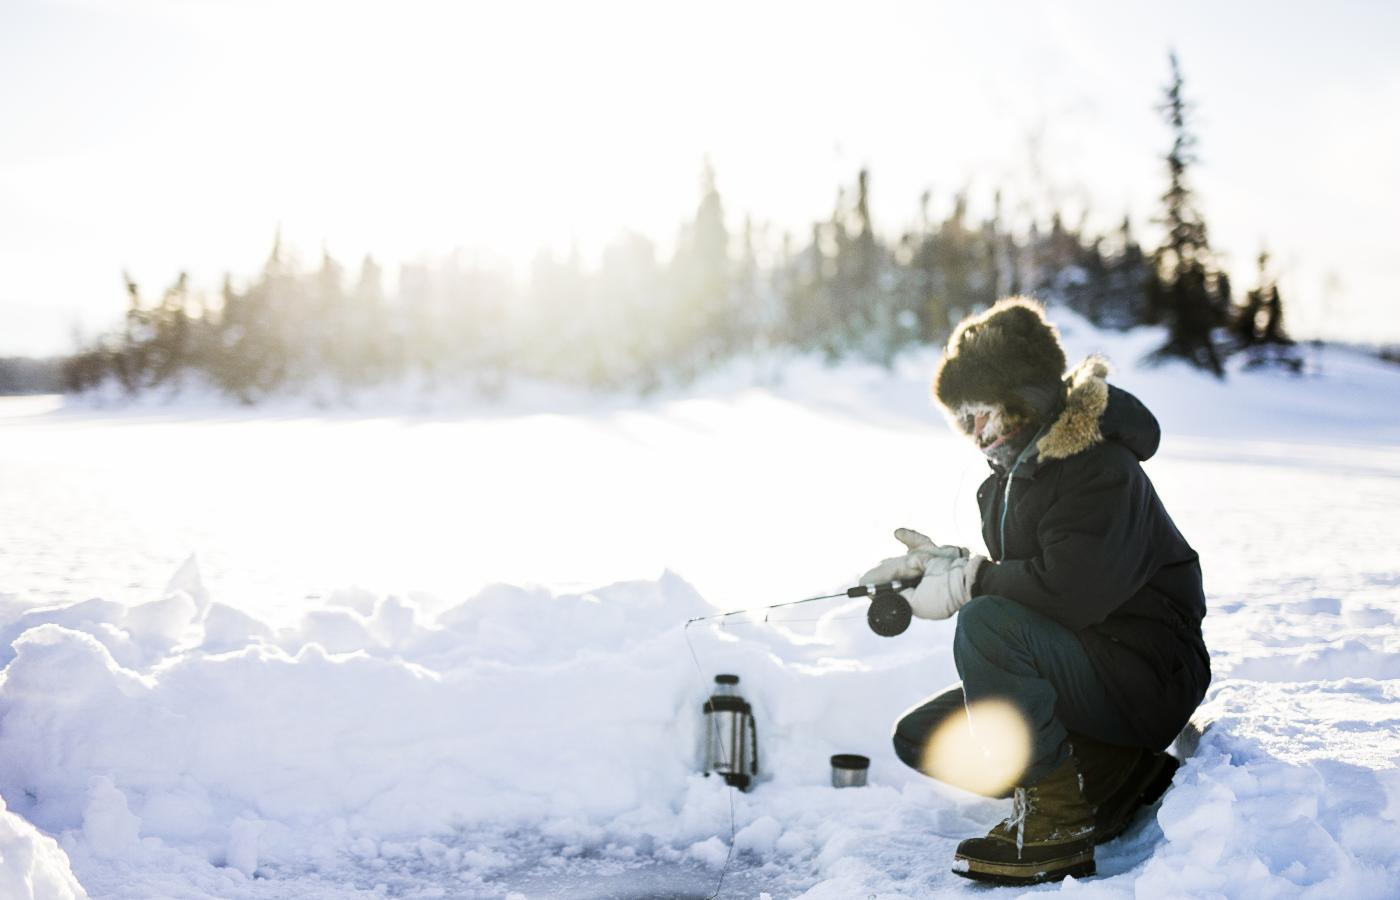 a person ice fishes on a frozen lake in the Northwest Territories